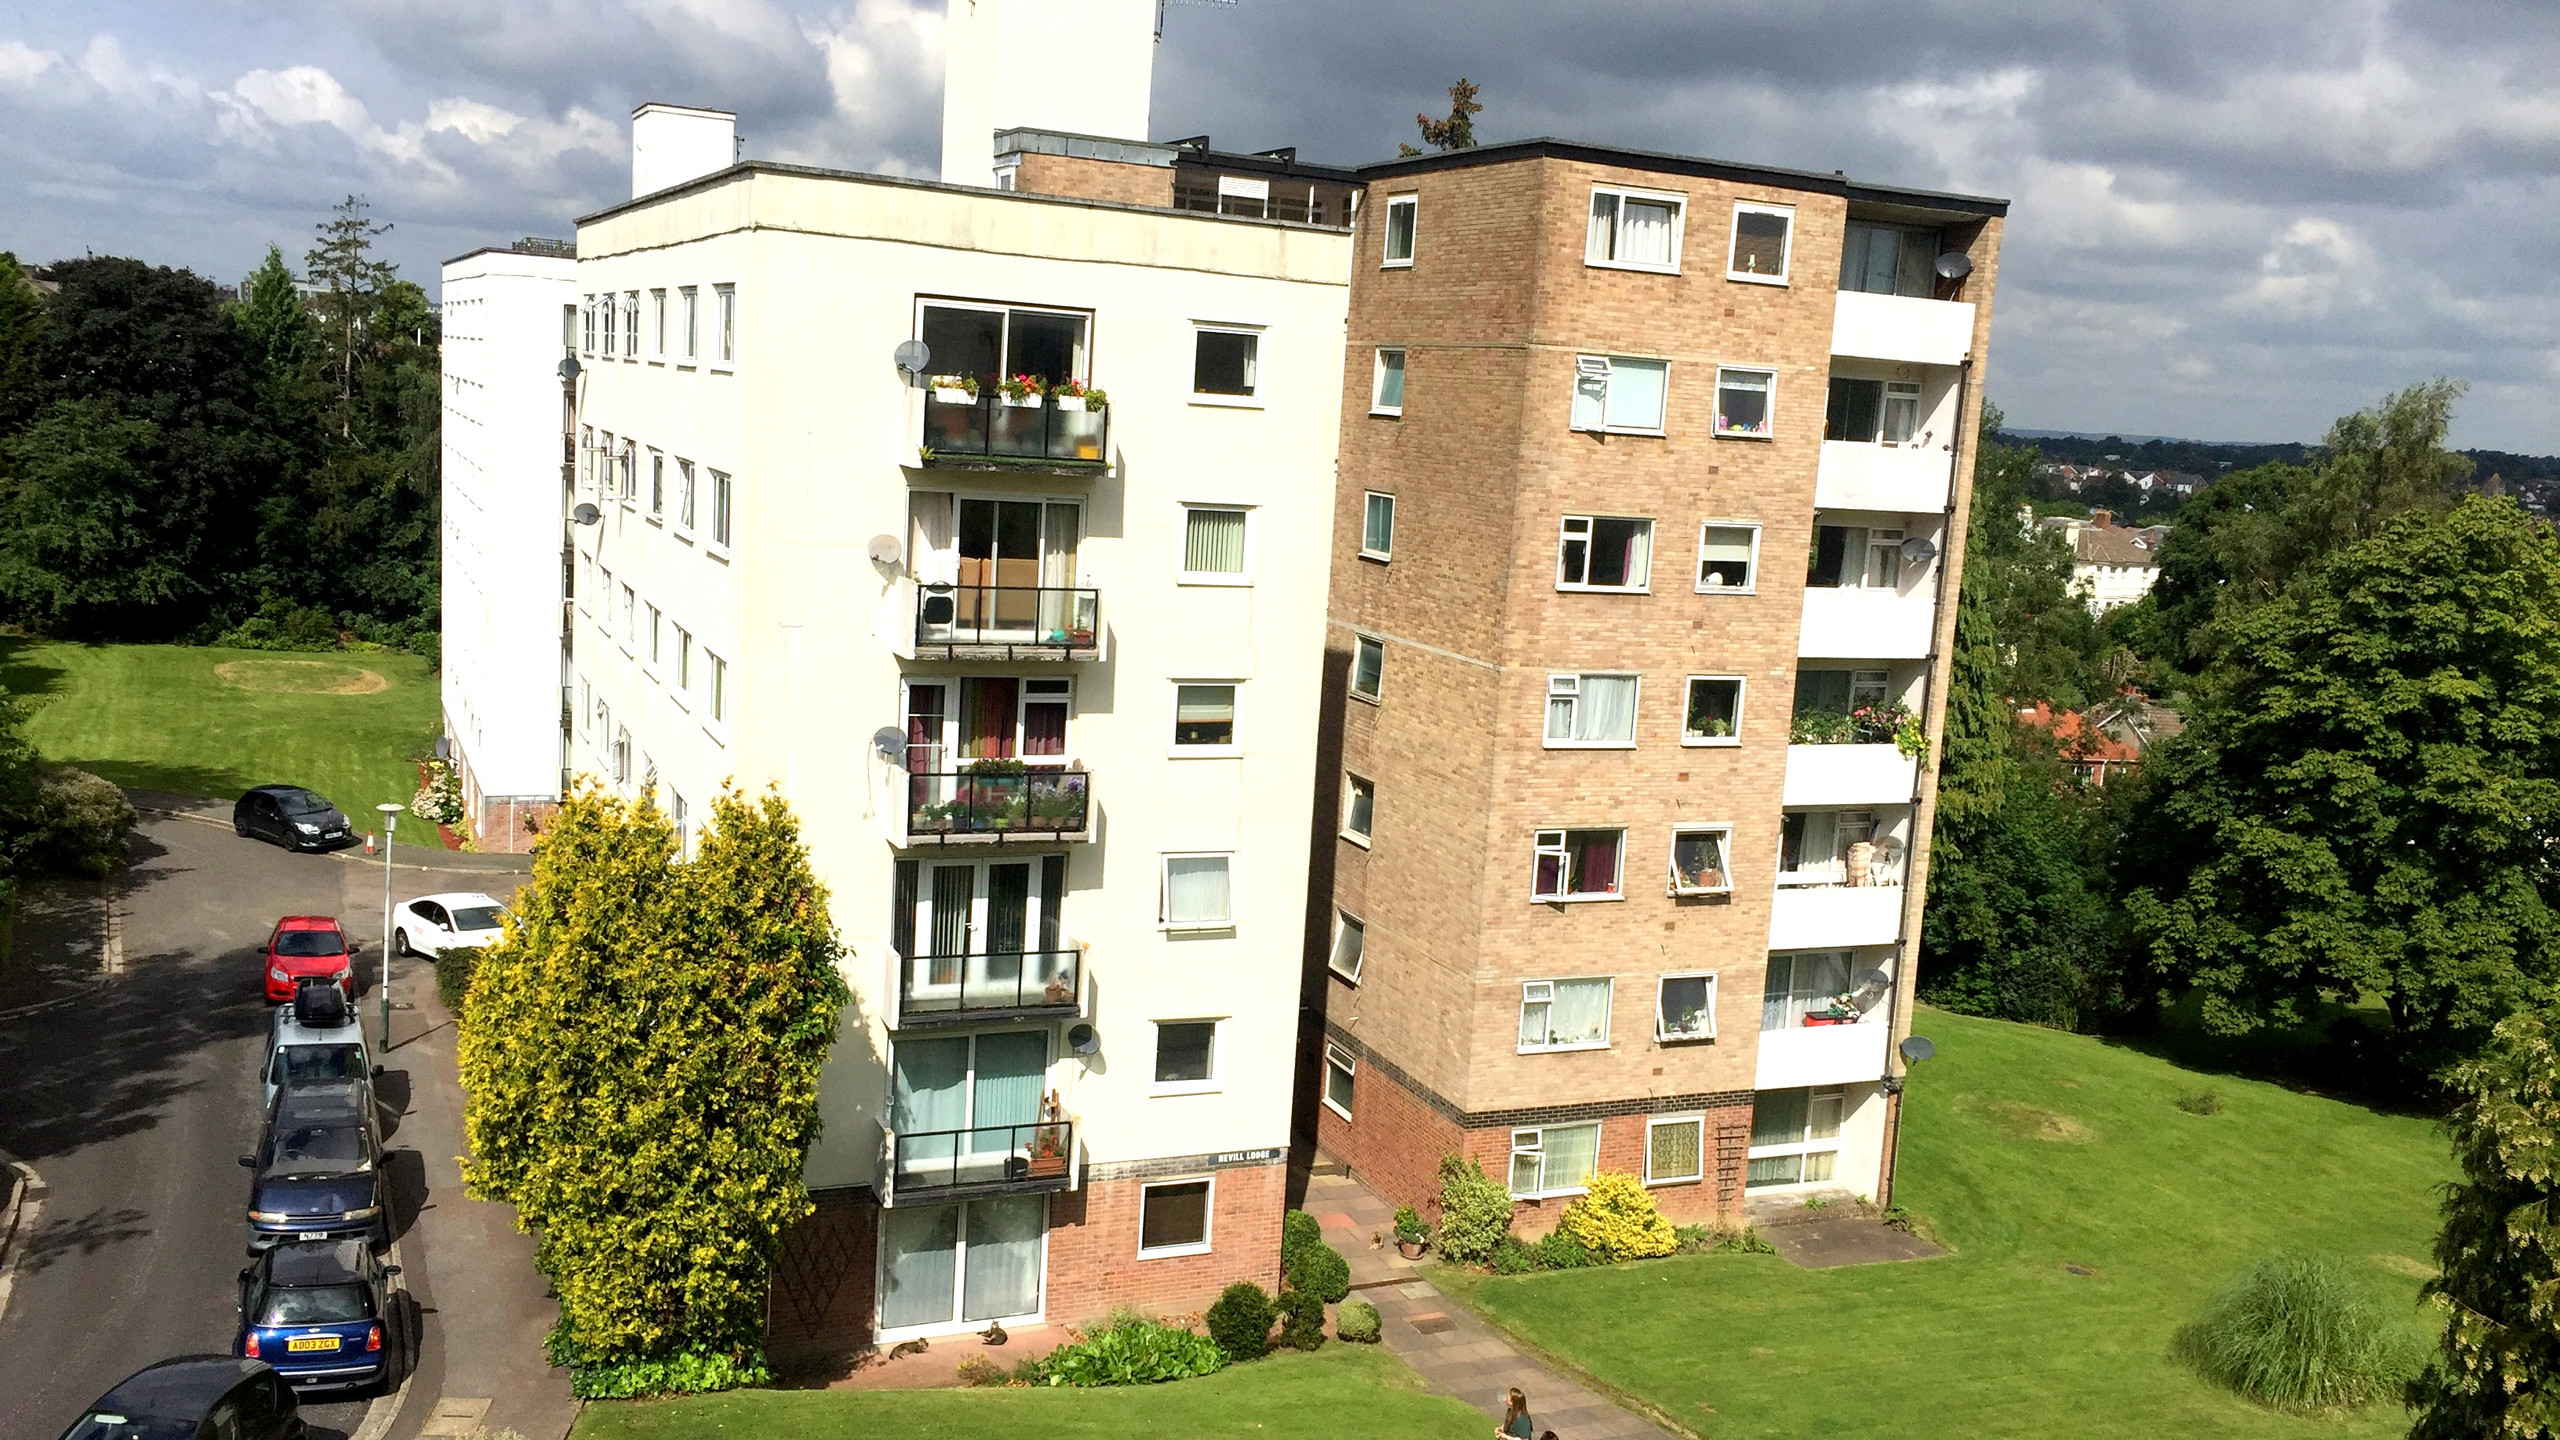 One of the 7 story residential blocks within the Ferndale Close estate, managed by AM Surveying Property Services.